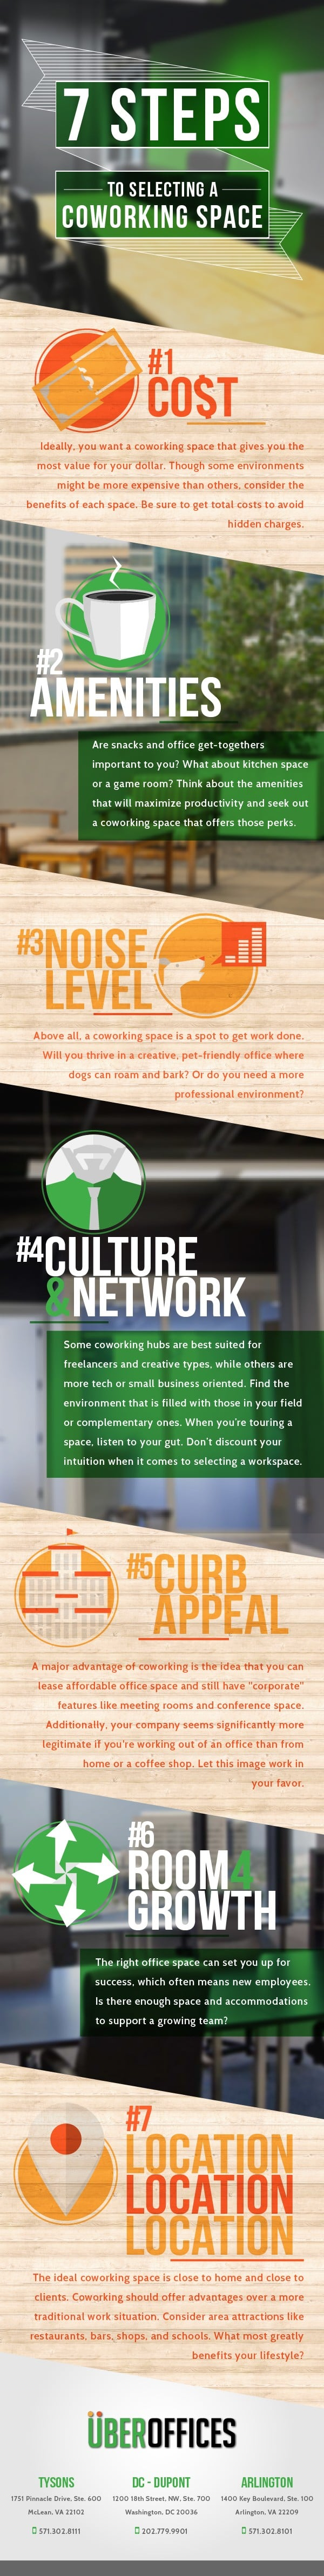 coworking_infographic_final